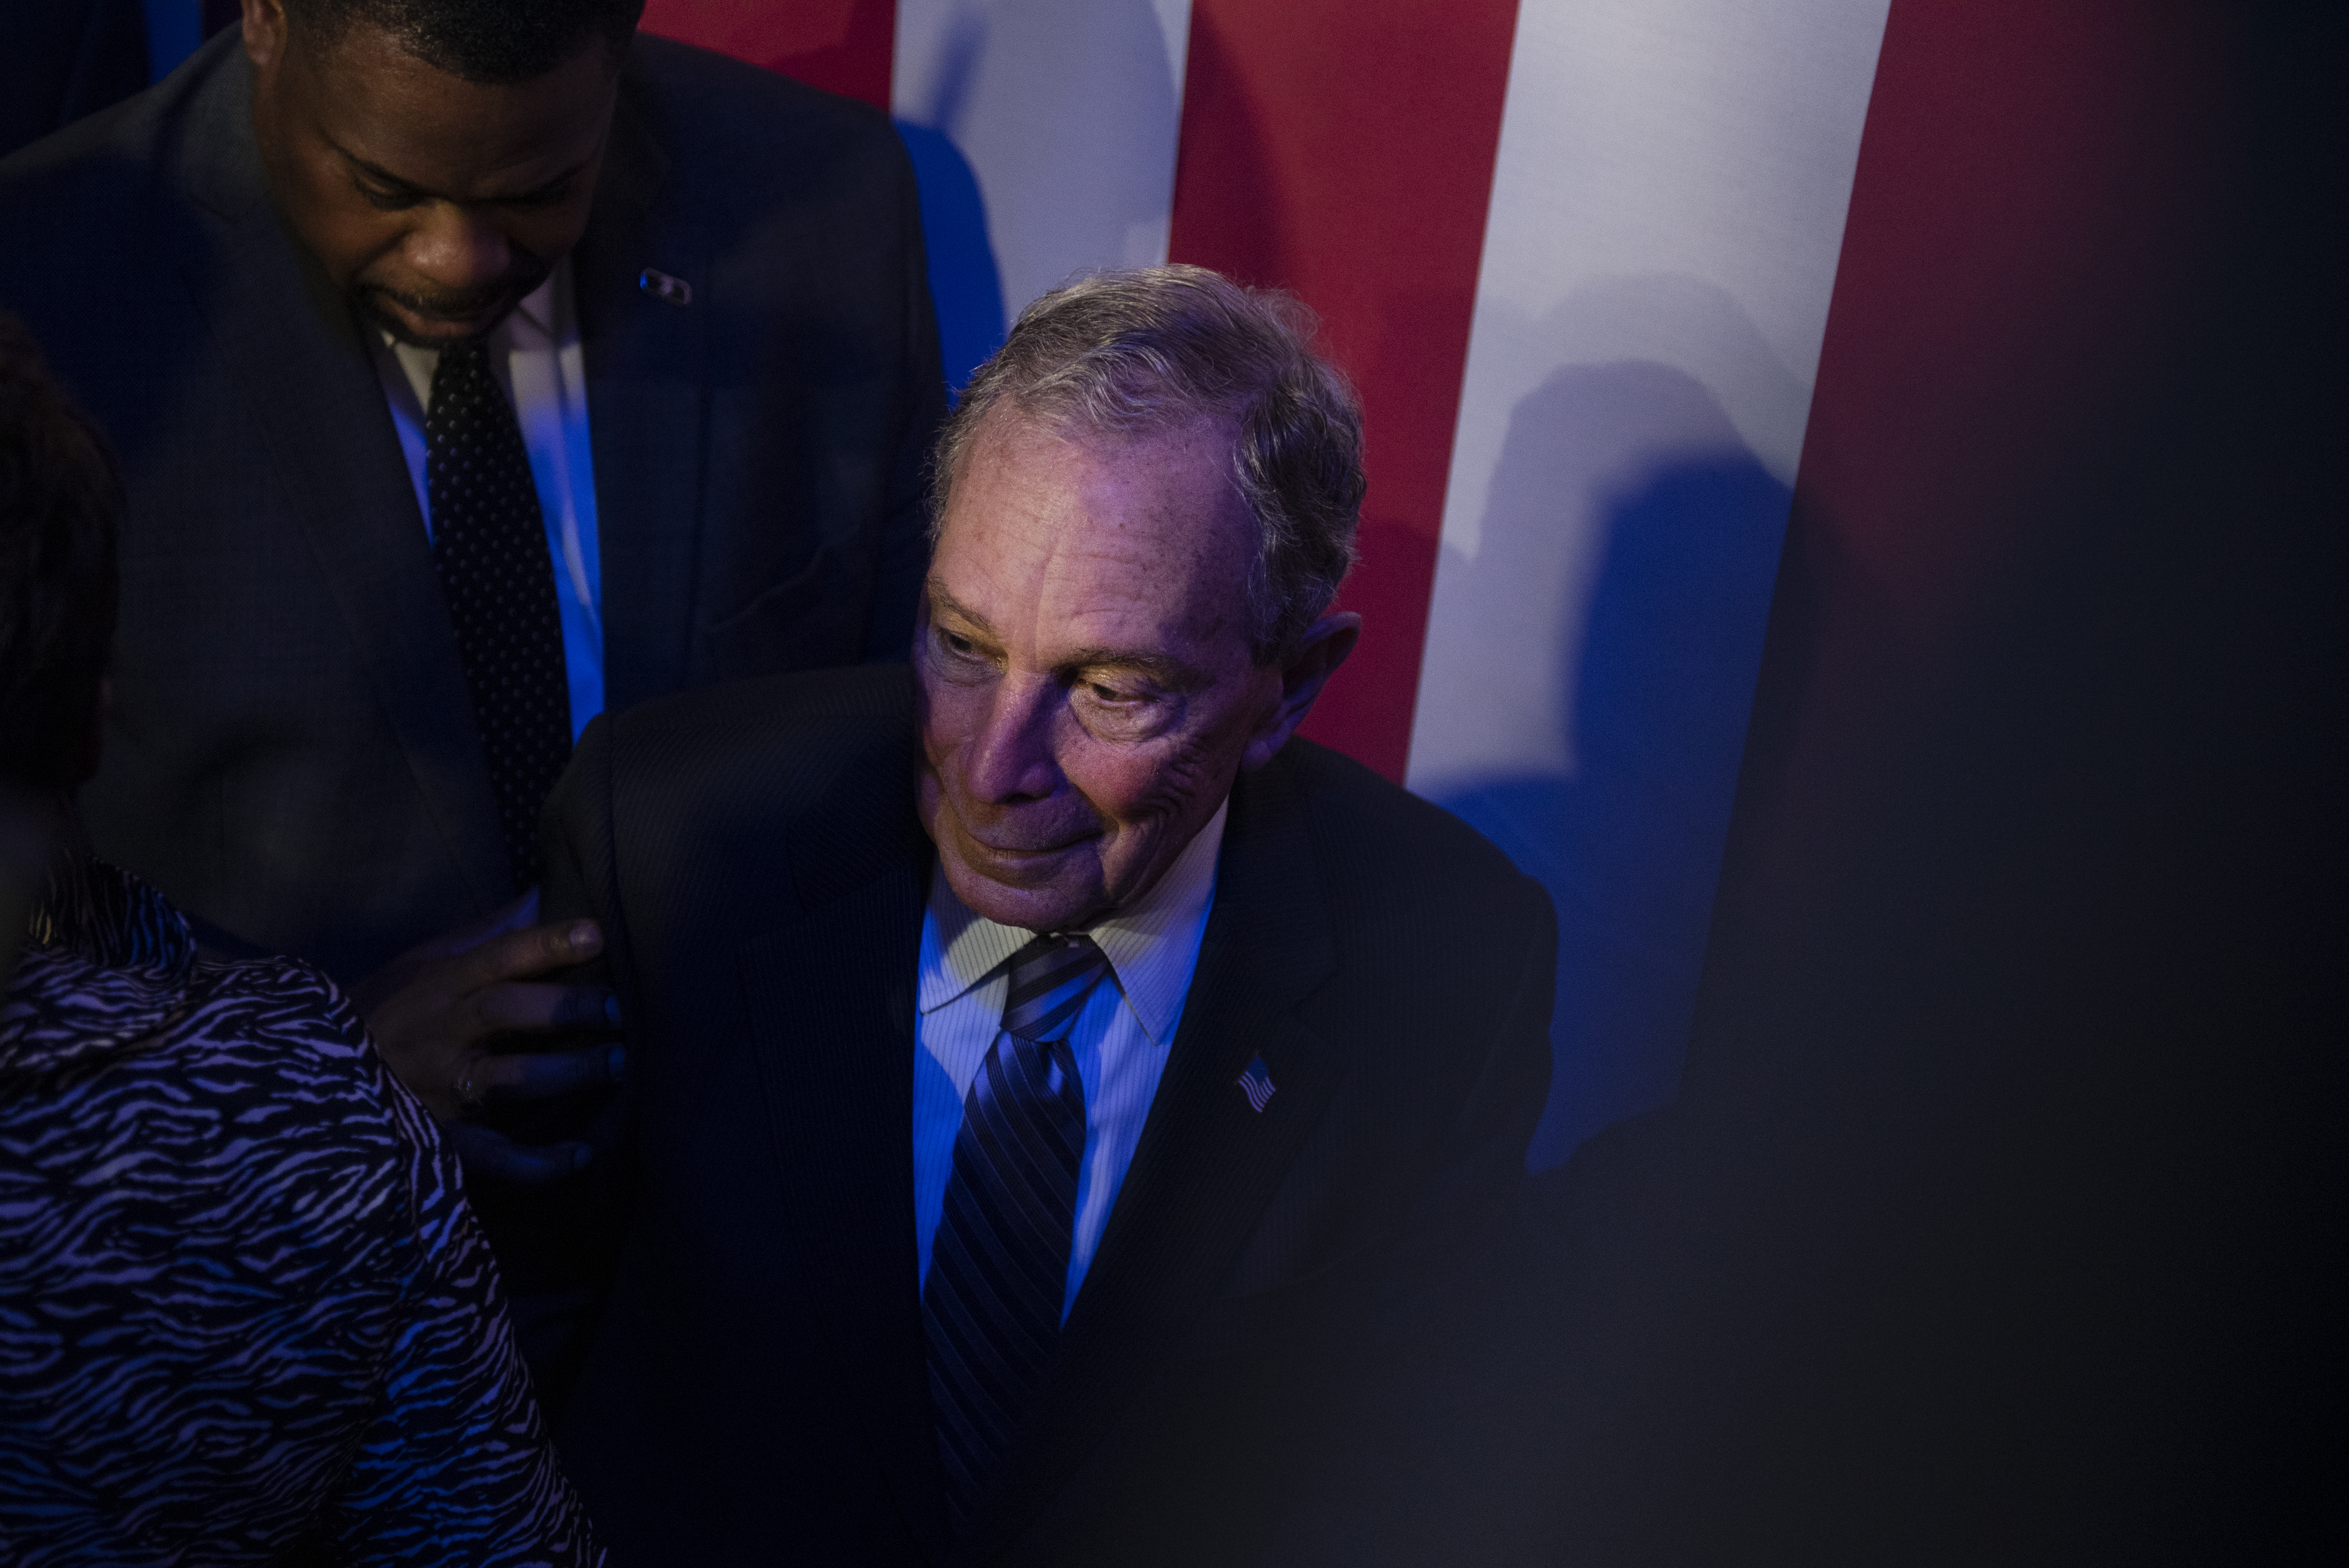 Bloomberg's past comments make trans voters wonder how much he'll prioritize trans rights